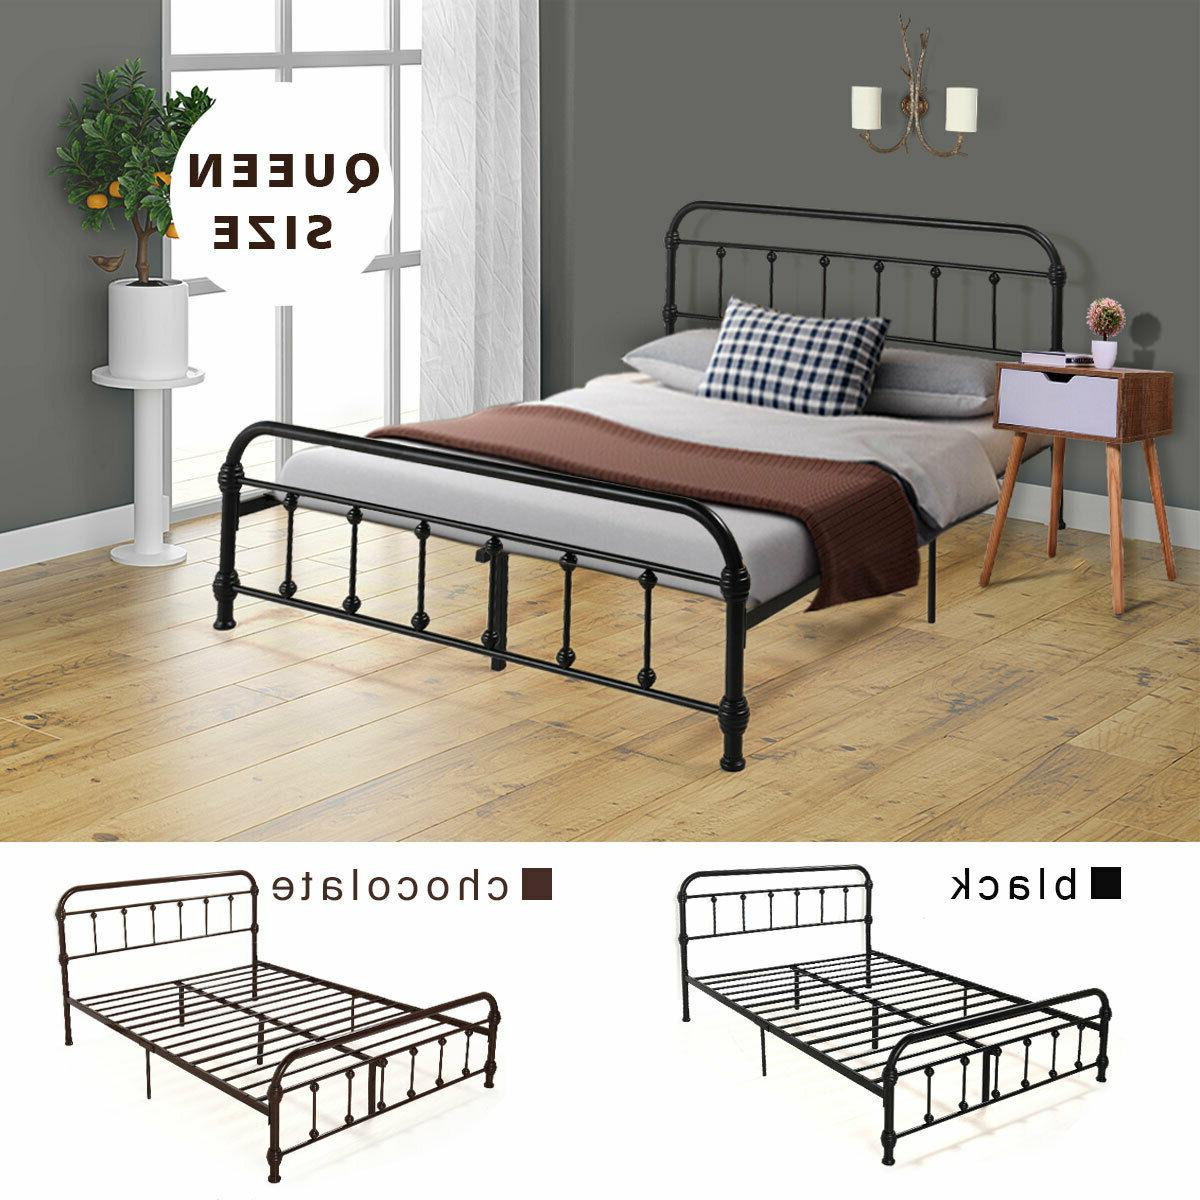 Heavy Metal Frame Bed Bedroom Furniture Bed